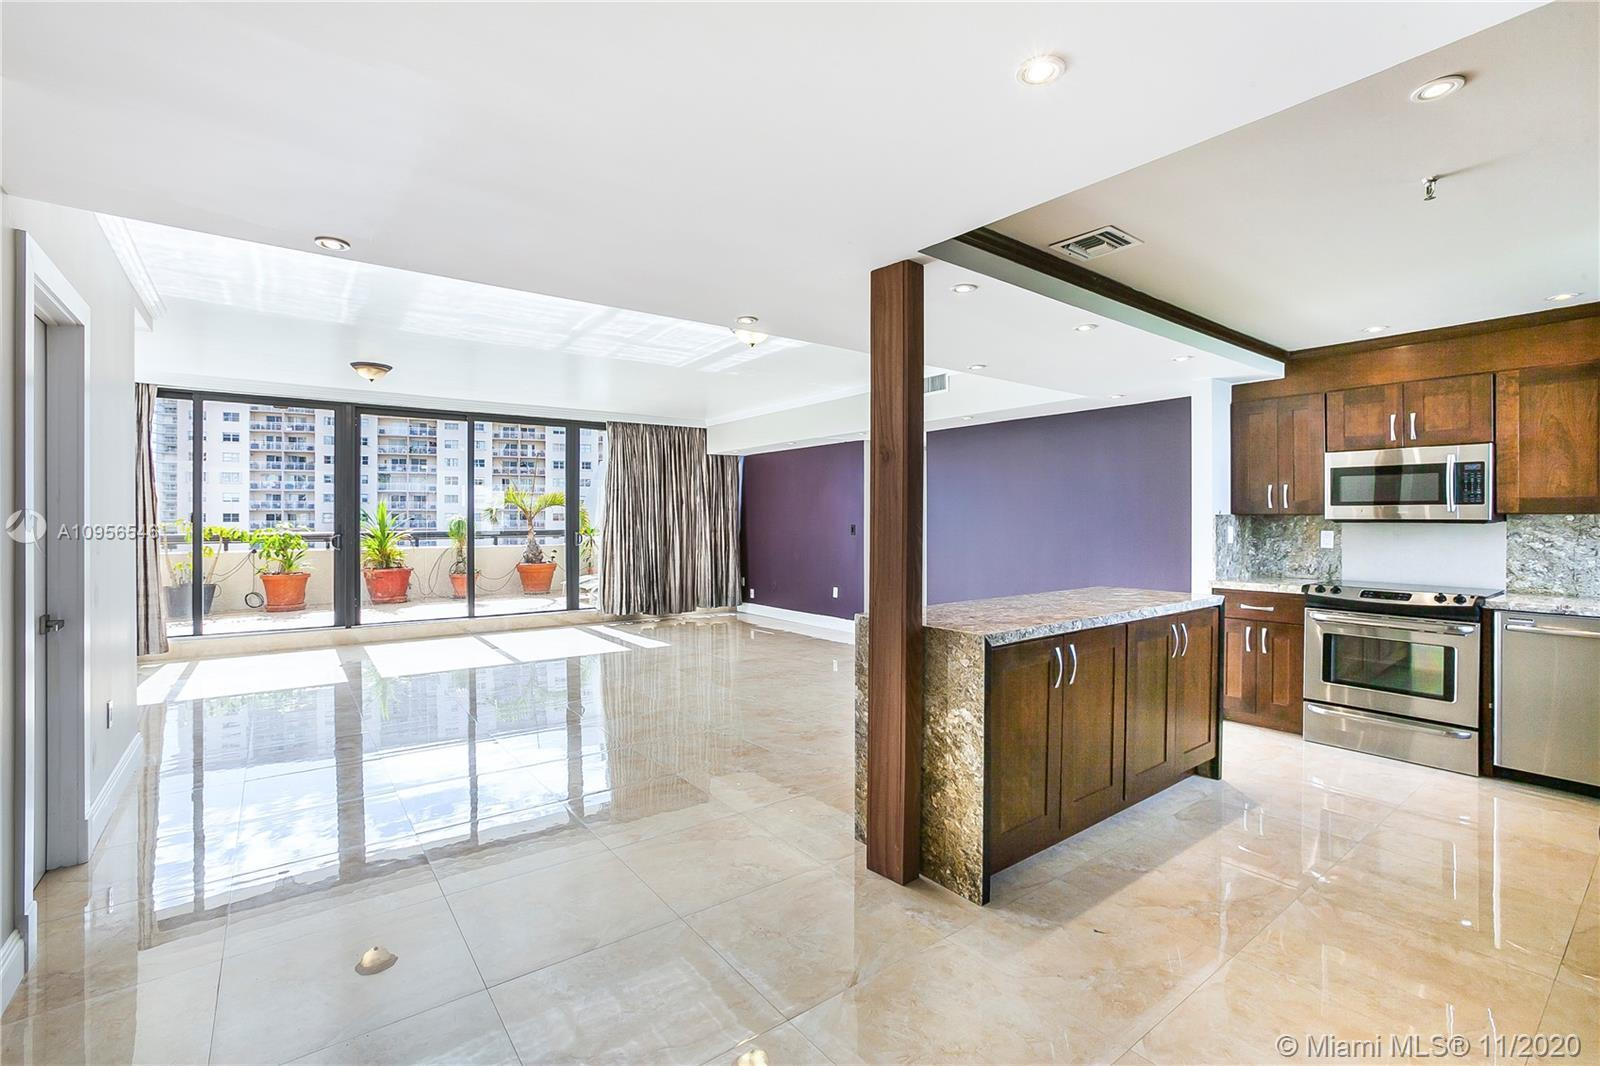 GORGEOUS UPGRADED PENTHOUSE with elevator that opens directly to unit. Come see this 2 BR/2.5 BA cor